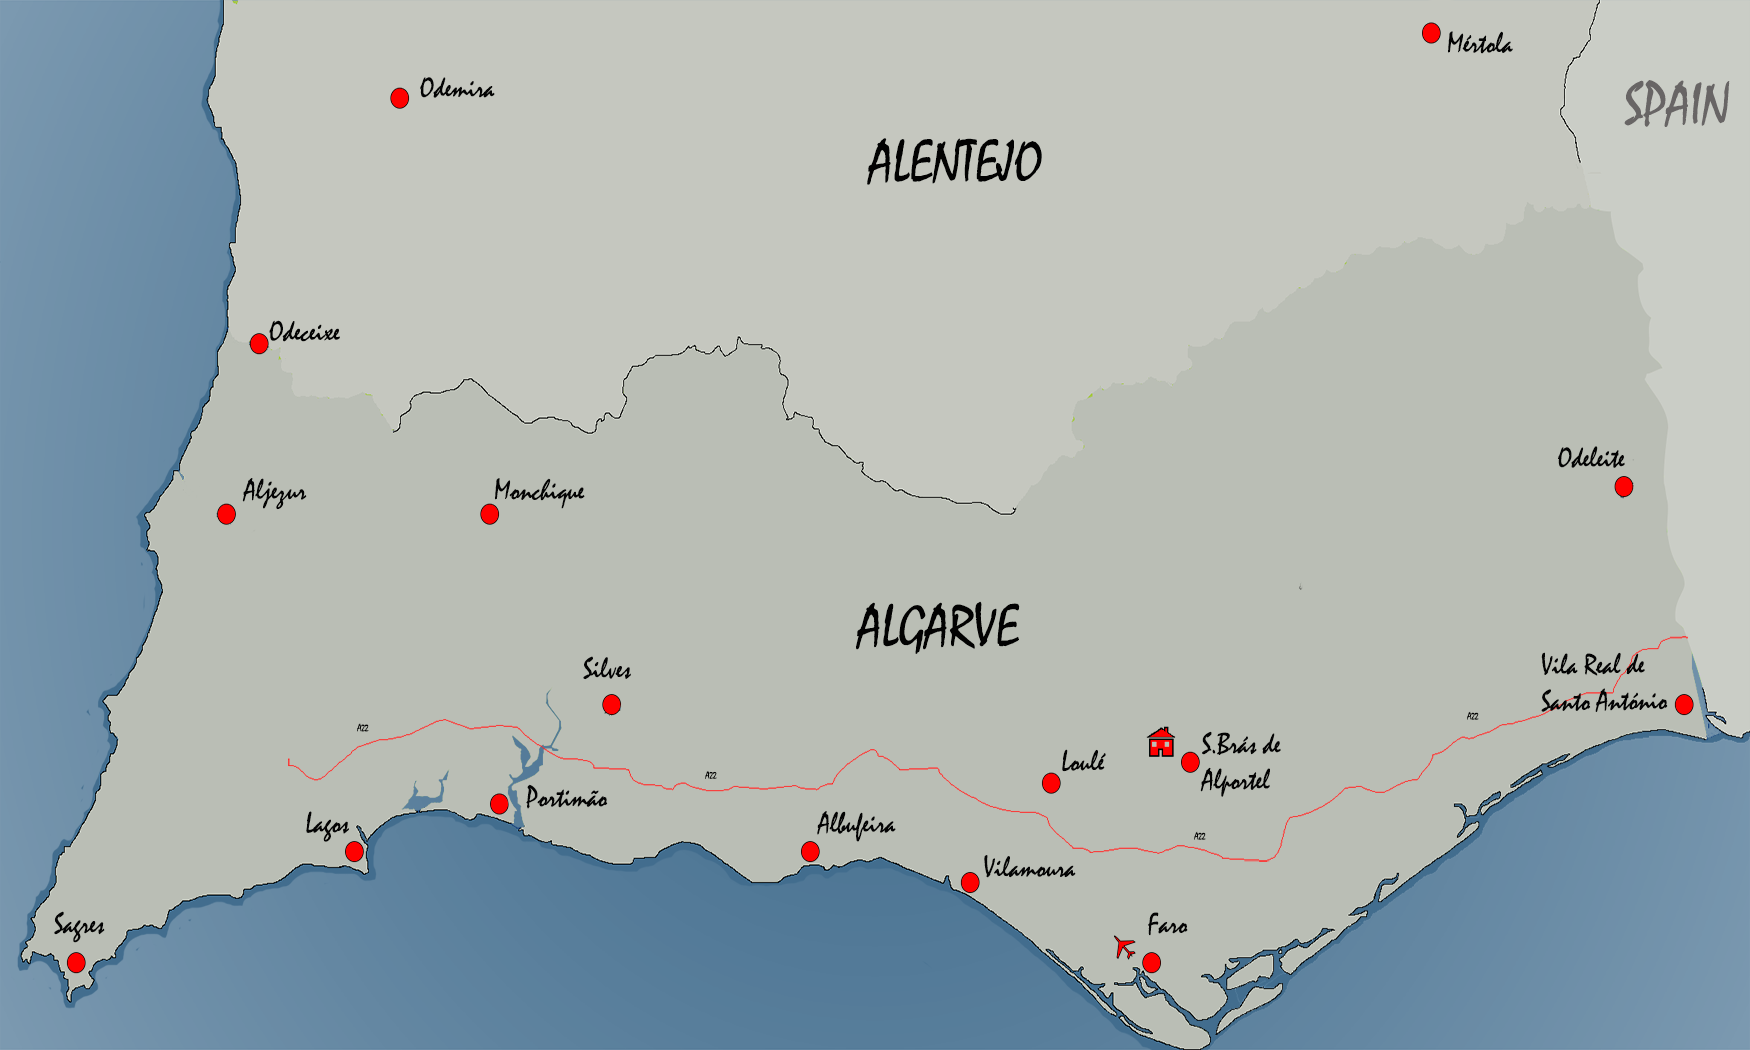 Mapa do Alentejo e Algarve